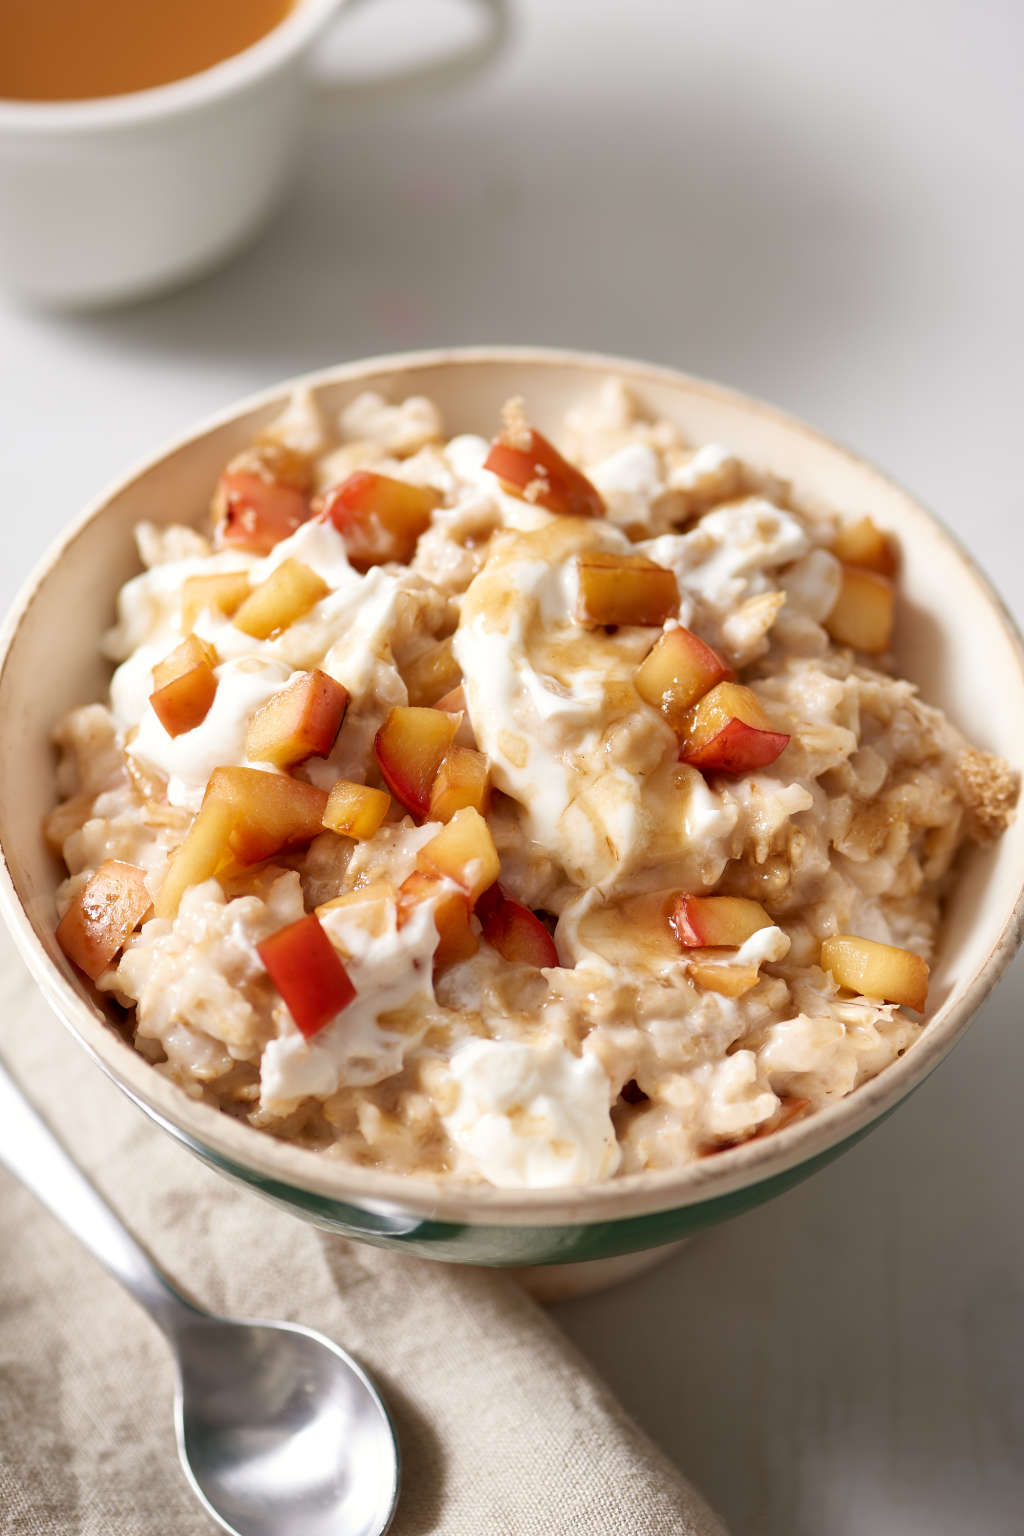 Let the Slow Cooker Wake You Up to a Warm Bowl of Oatmeal